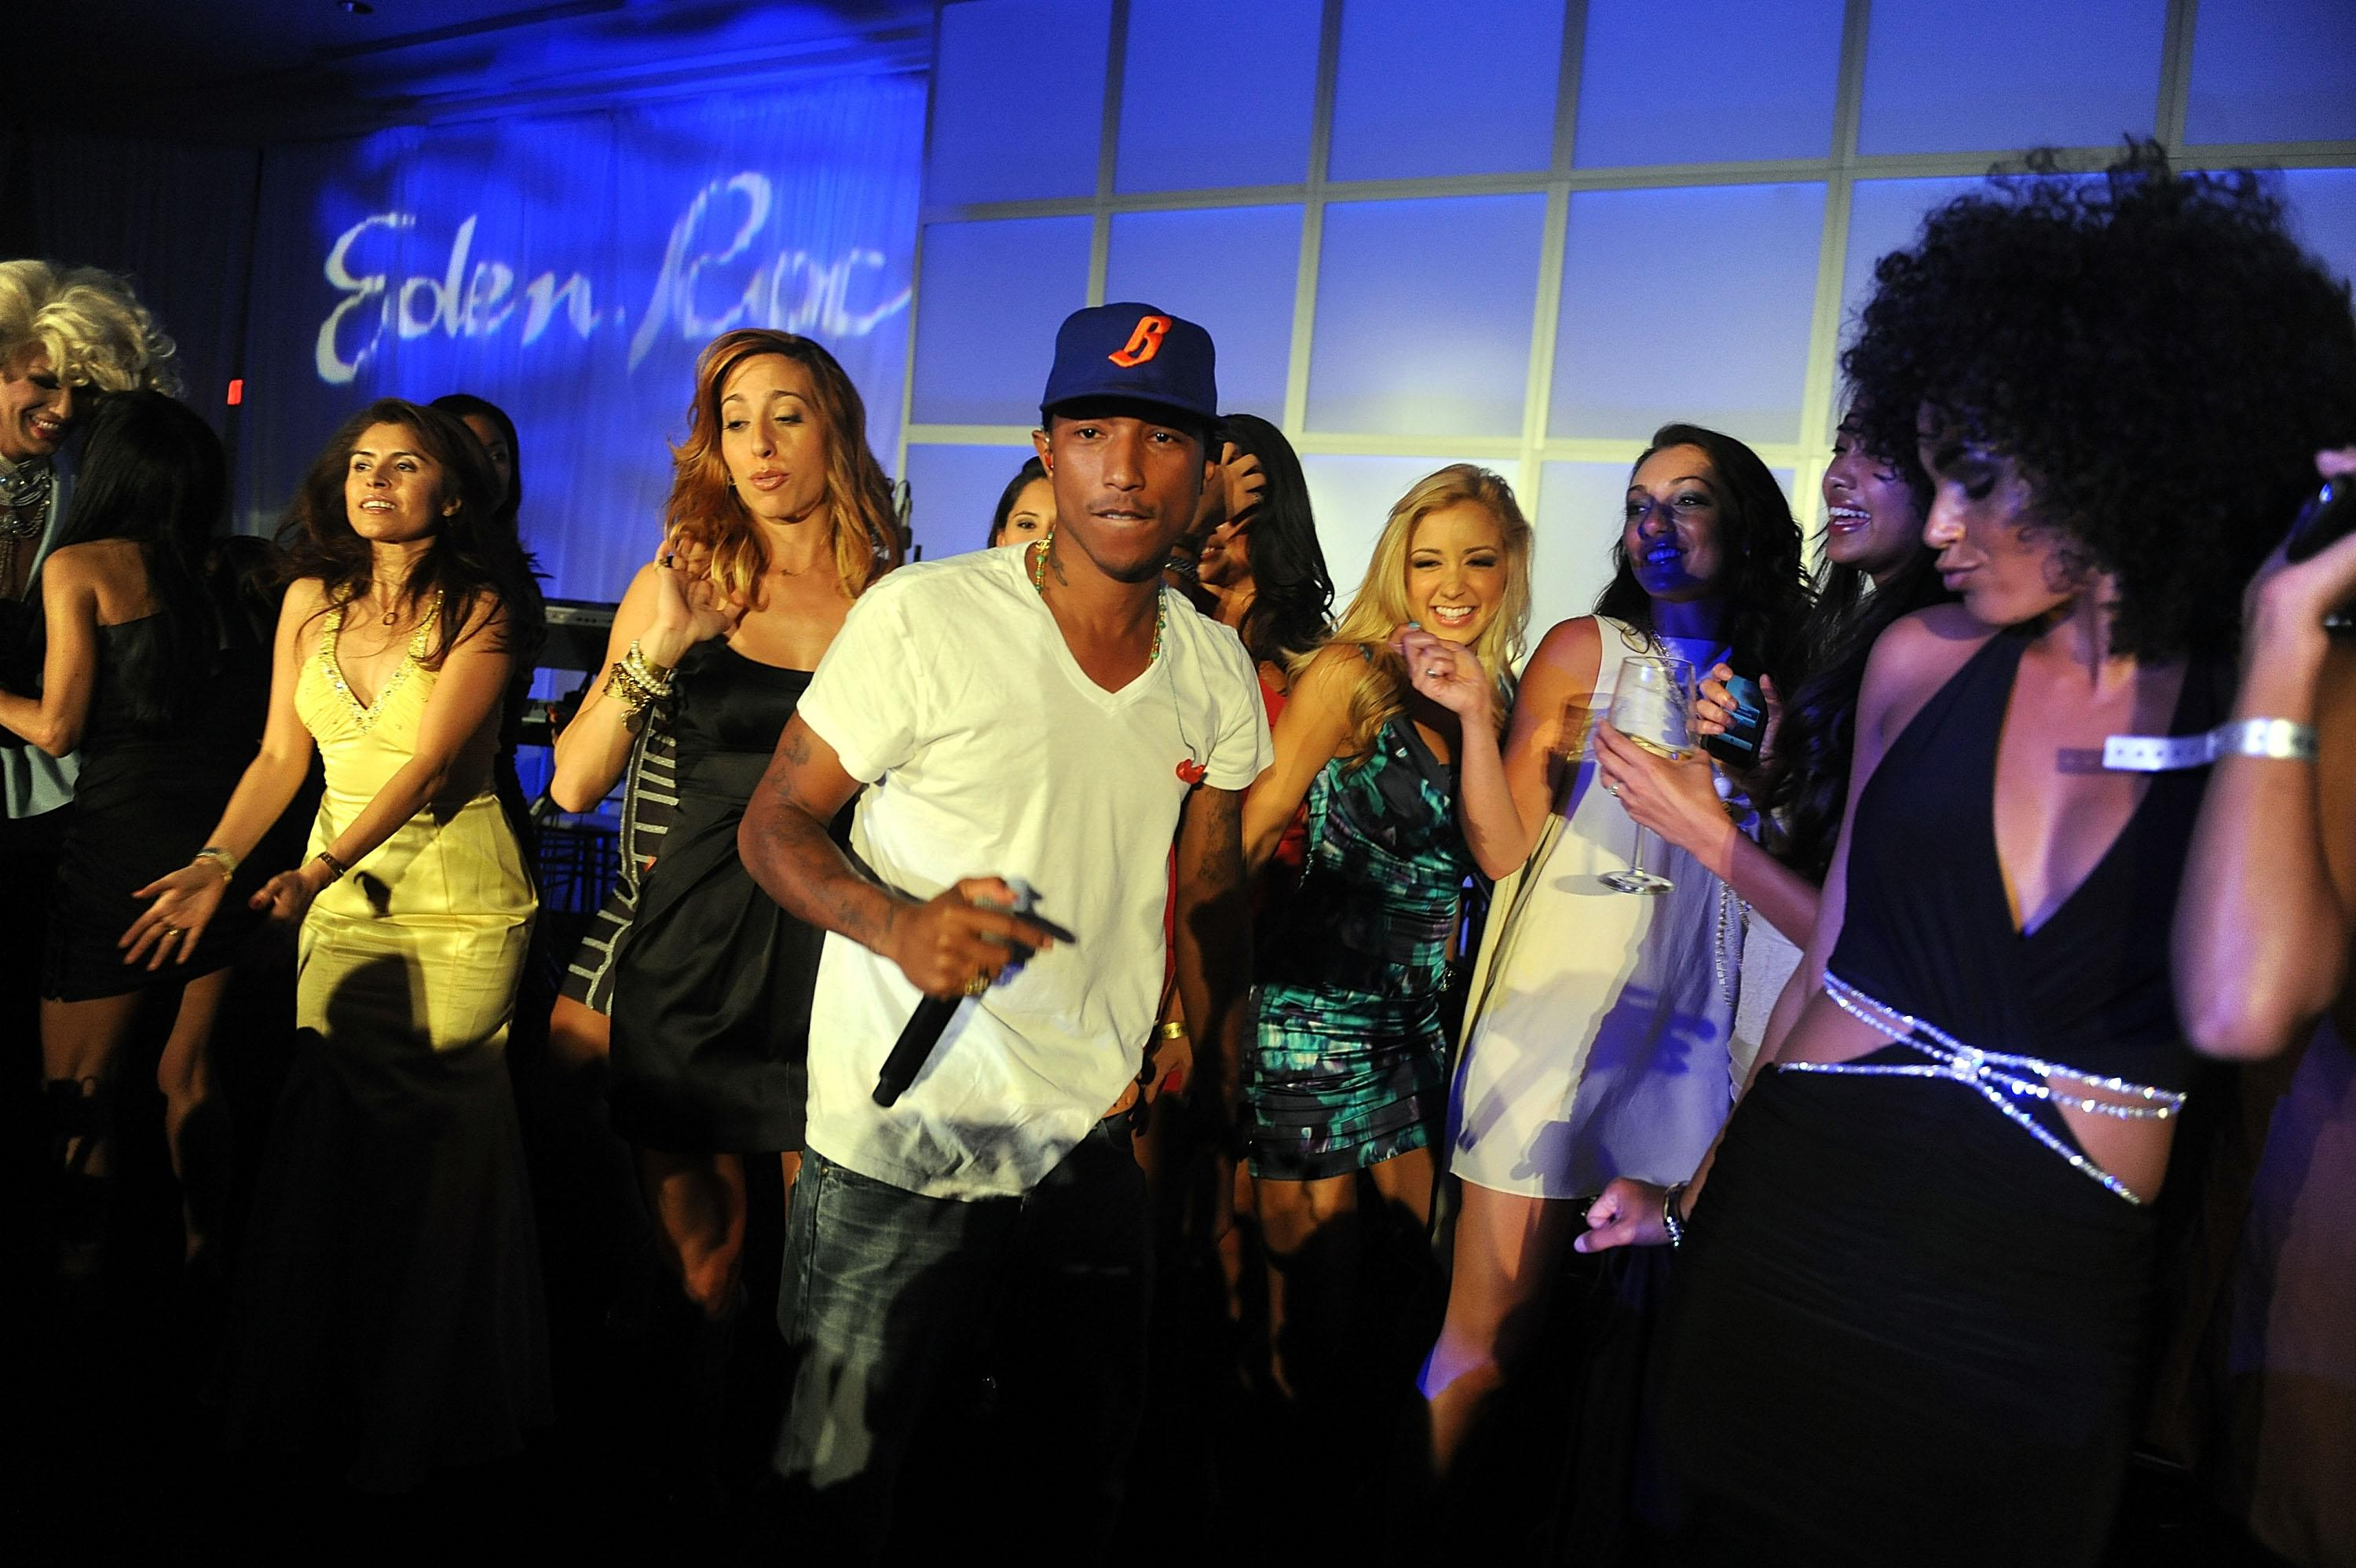 MIAMI BEACH, FL - APRIL 02:  Singer Pharrell Williams performs at the gala to benefit at-risk youth at Eden Roc Hotel on April 2, 2011 in Miami Beach, Florida.  (Photo by Gustavo Caballero/Getty Images for The Blacks' Annual Gala) *** Local Caption *** Pharrell Williams